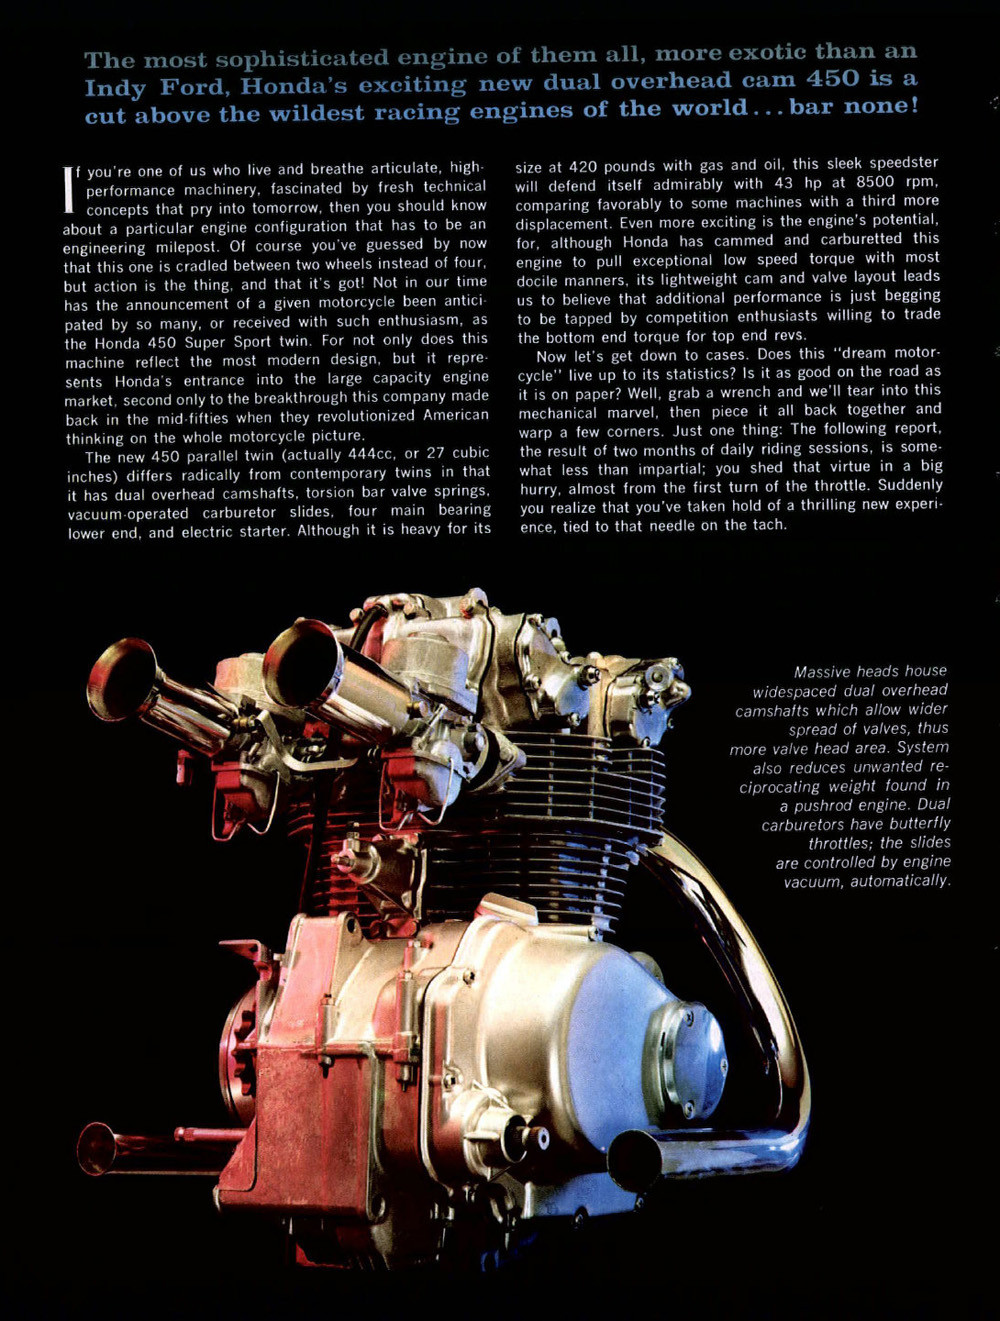 Honda 450 Engine tech article 02.jpg